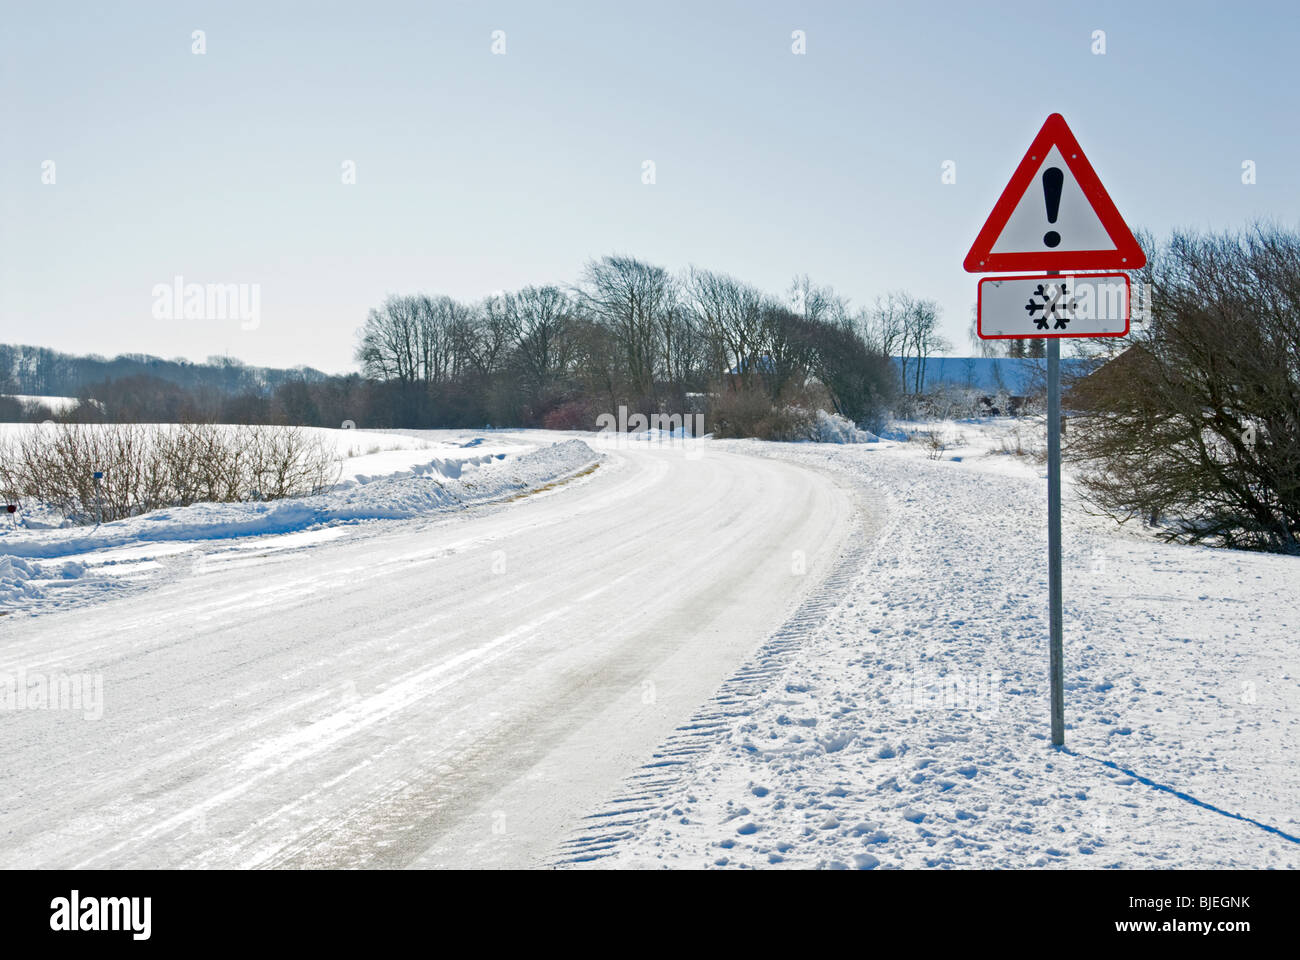 Sign warning for icy and slippery roads. - Stock Image